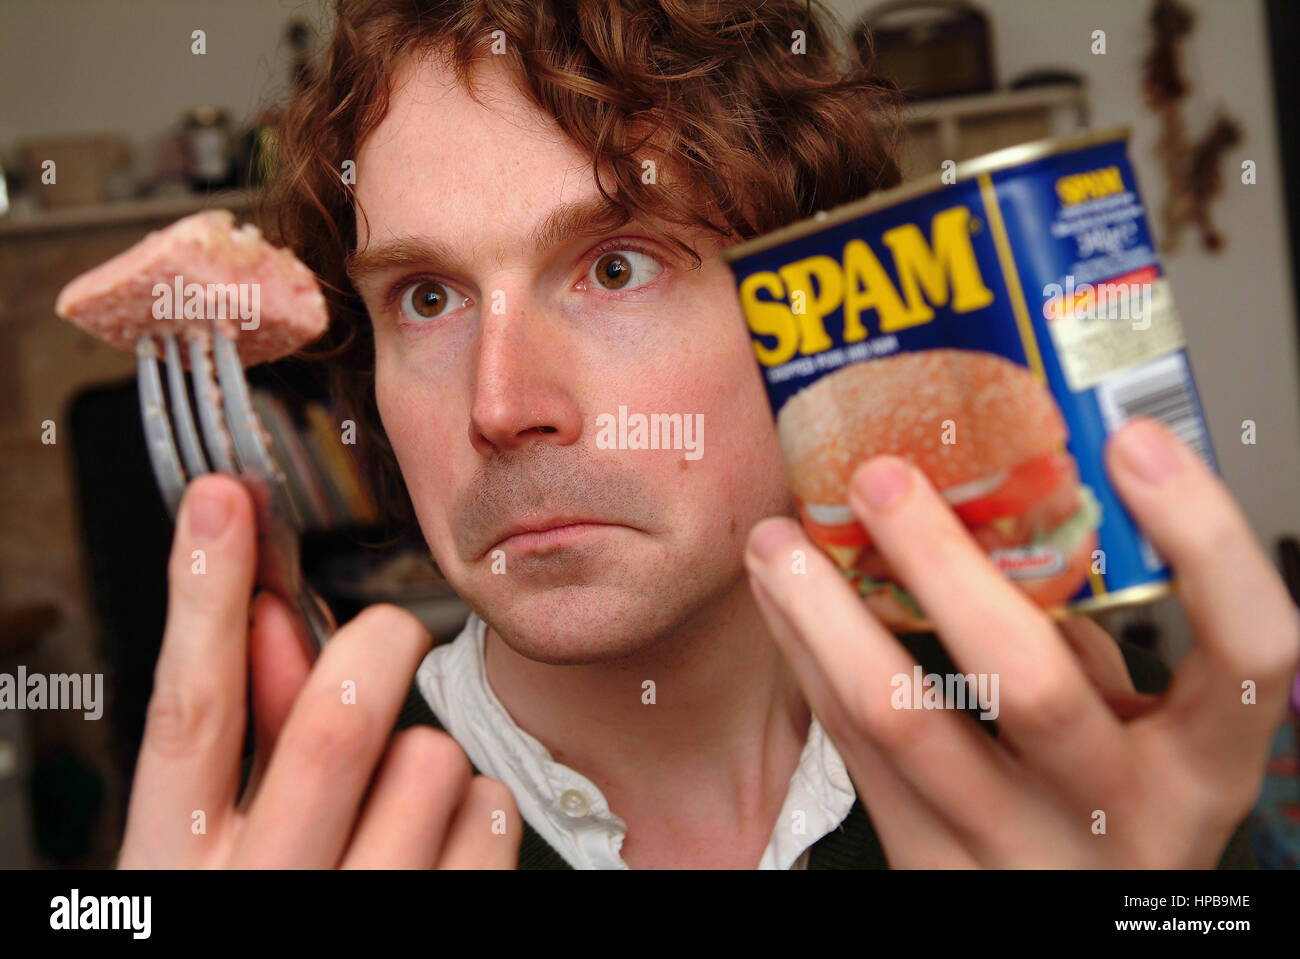 Tom Payne with a can of Spam (spicey ham) and a recreation of a wartime Spam meal - Stock Image